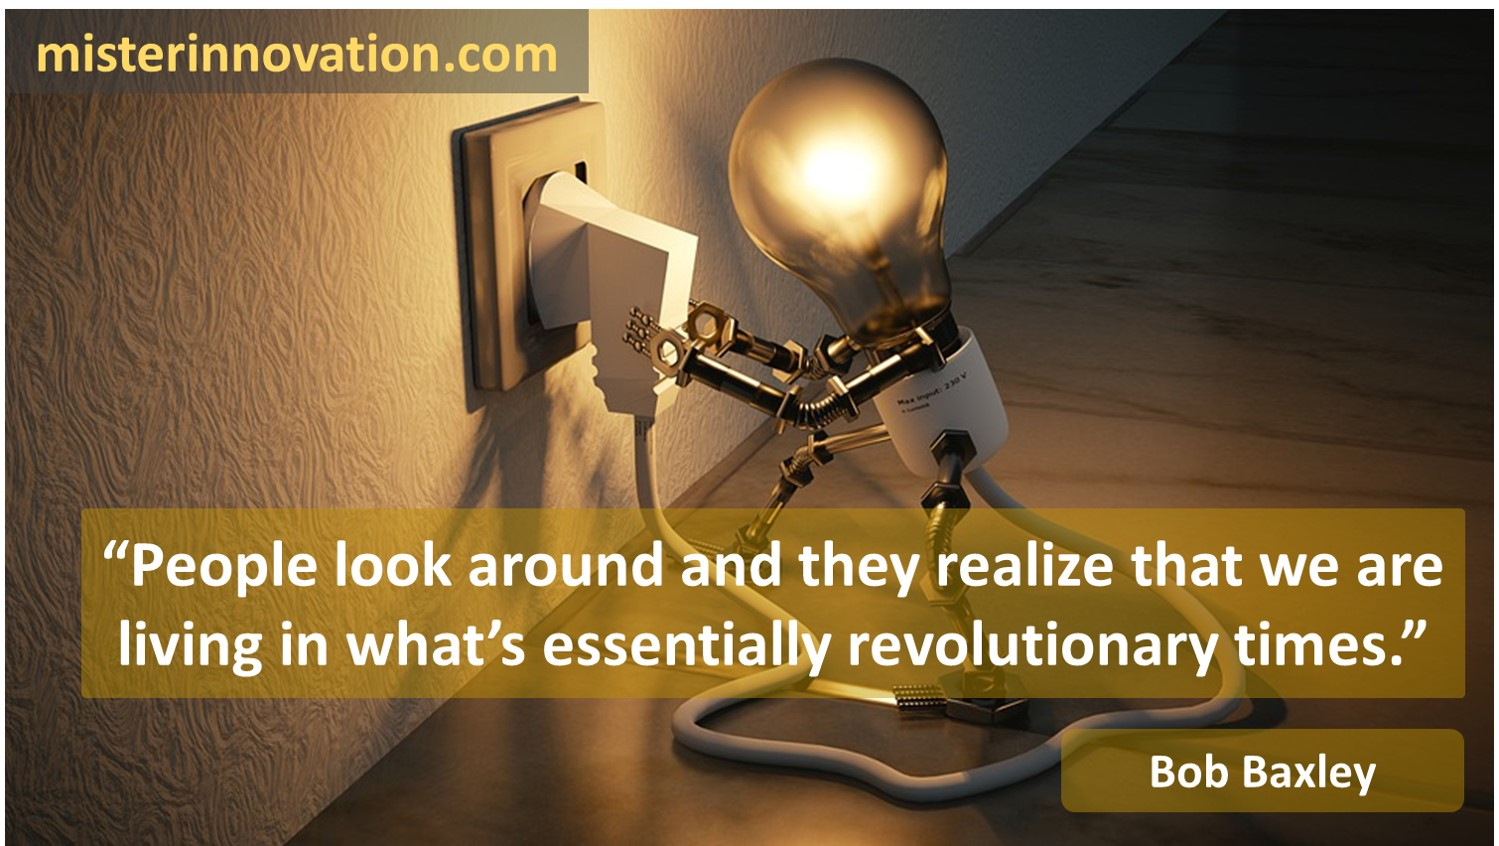 Bob Baxley quote about revolutionary times